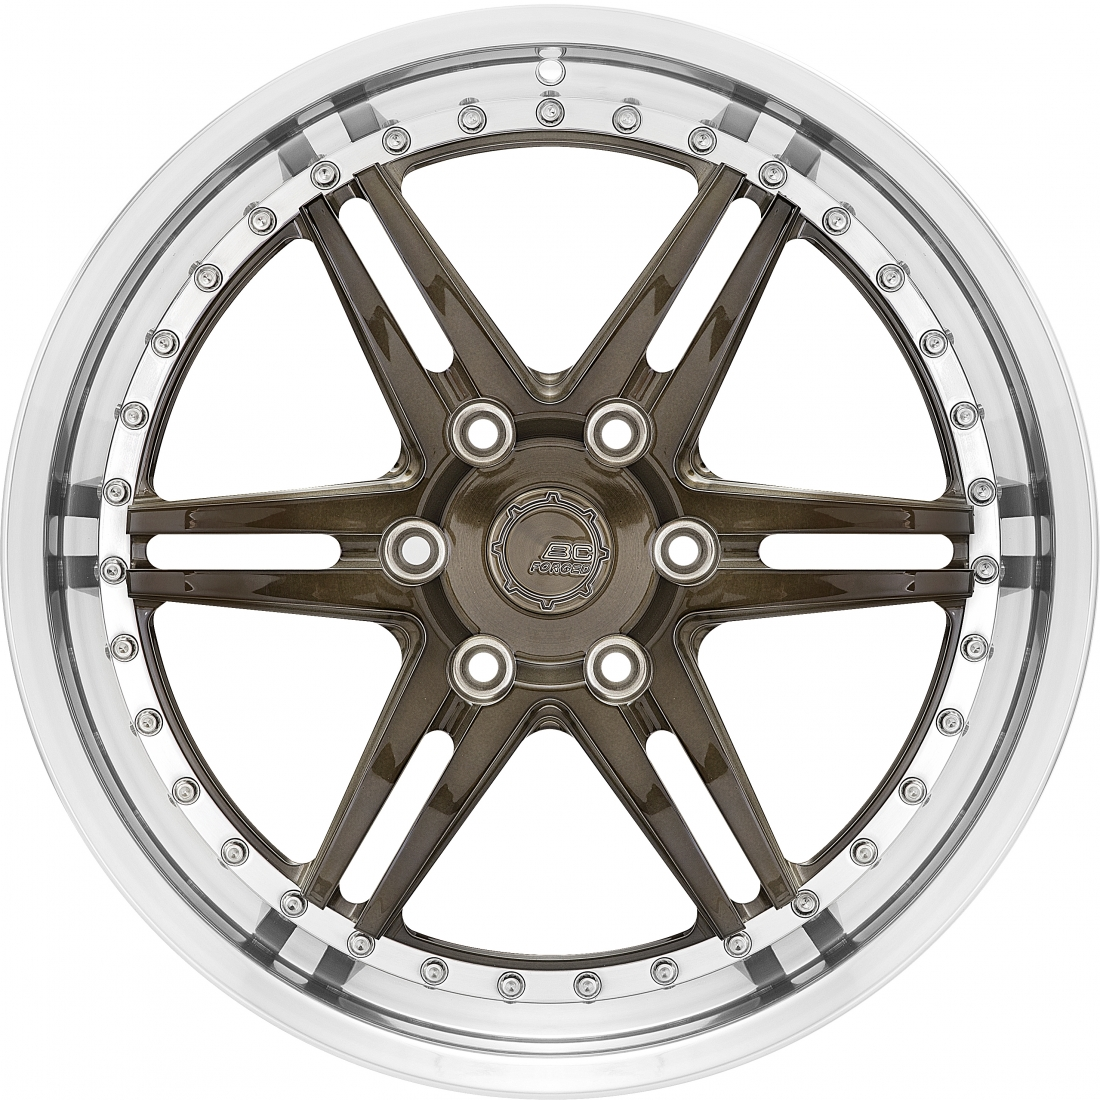 BC Forged LE65/MLE65 Forged Modular Wheel 19″